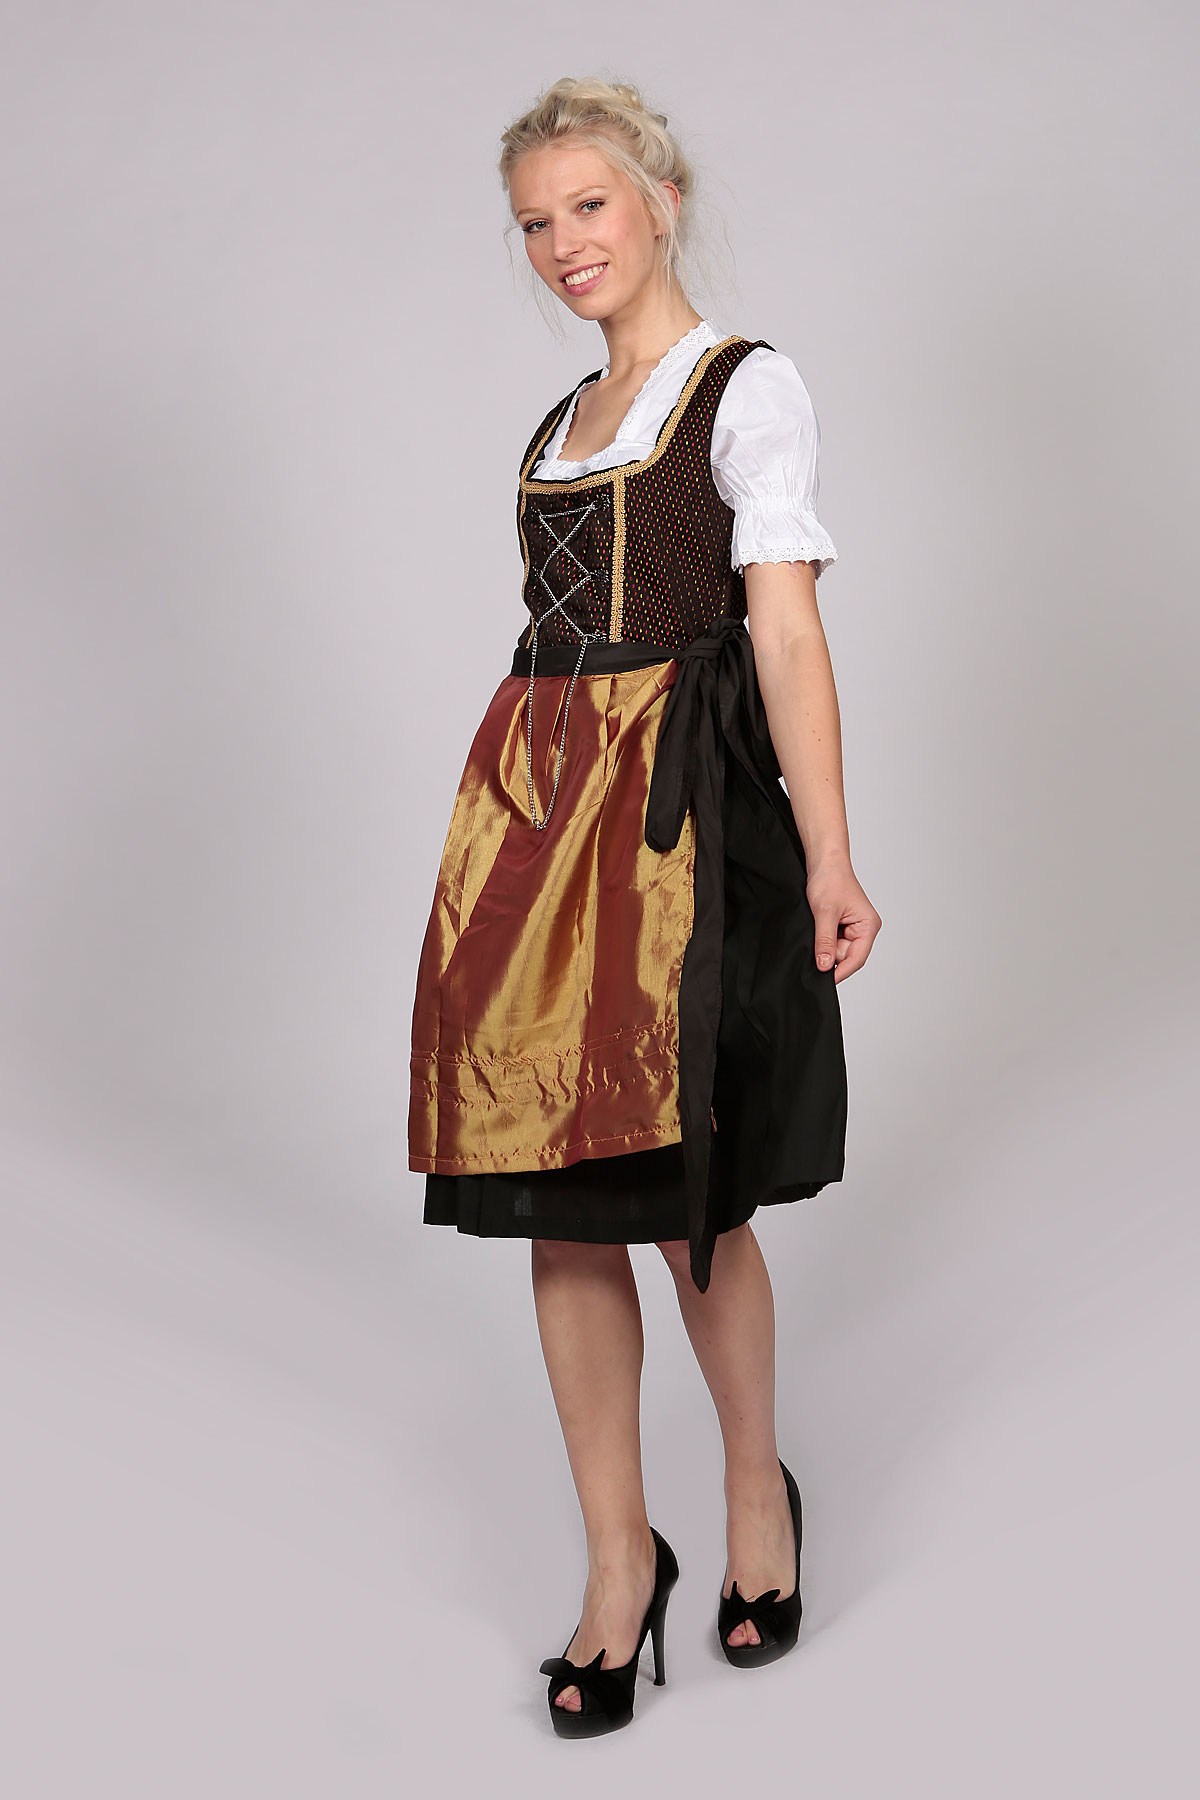 Vintage Amara Midi Dirndl Dress Black Gold Lederhosen Store